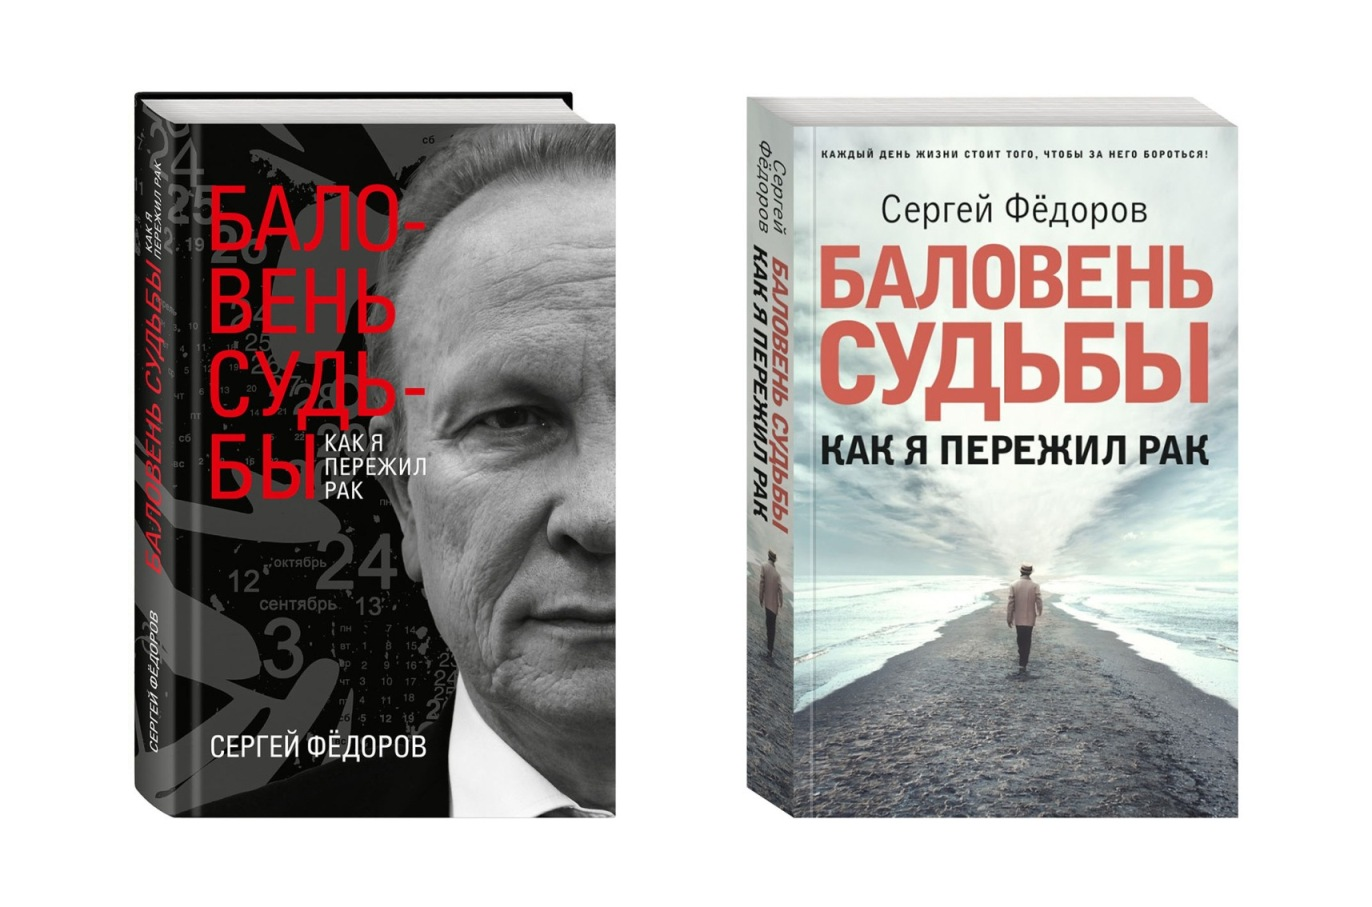 Fedorov_S_book